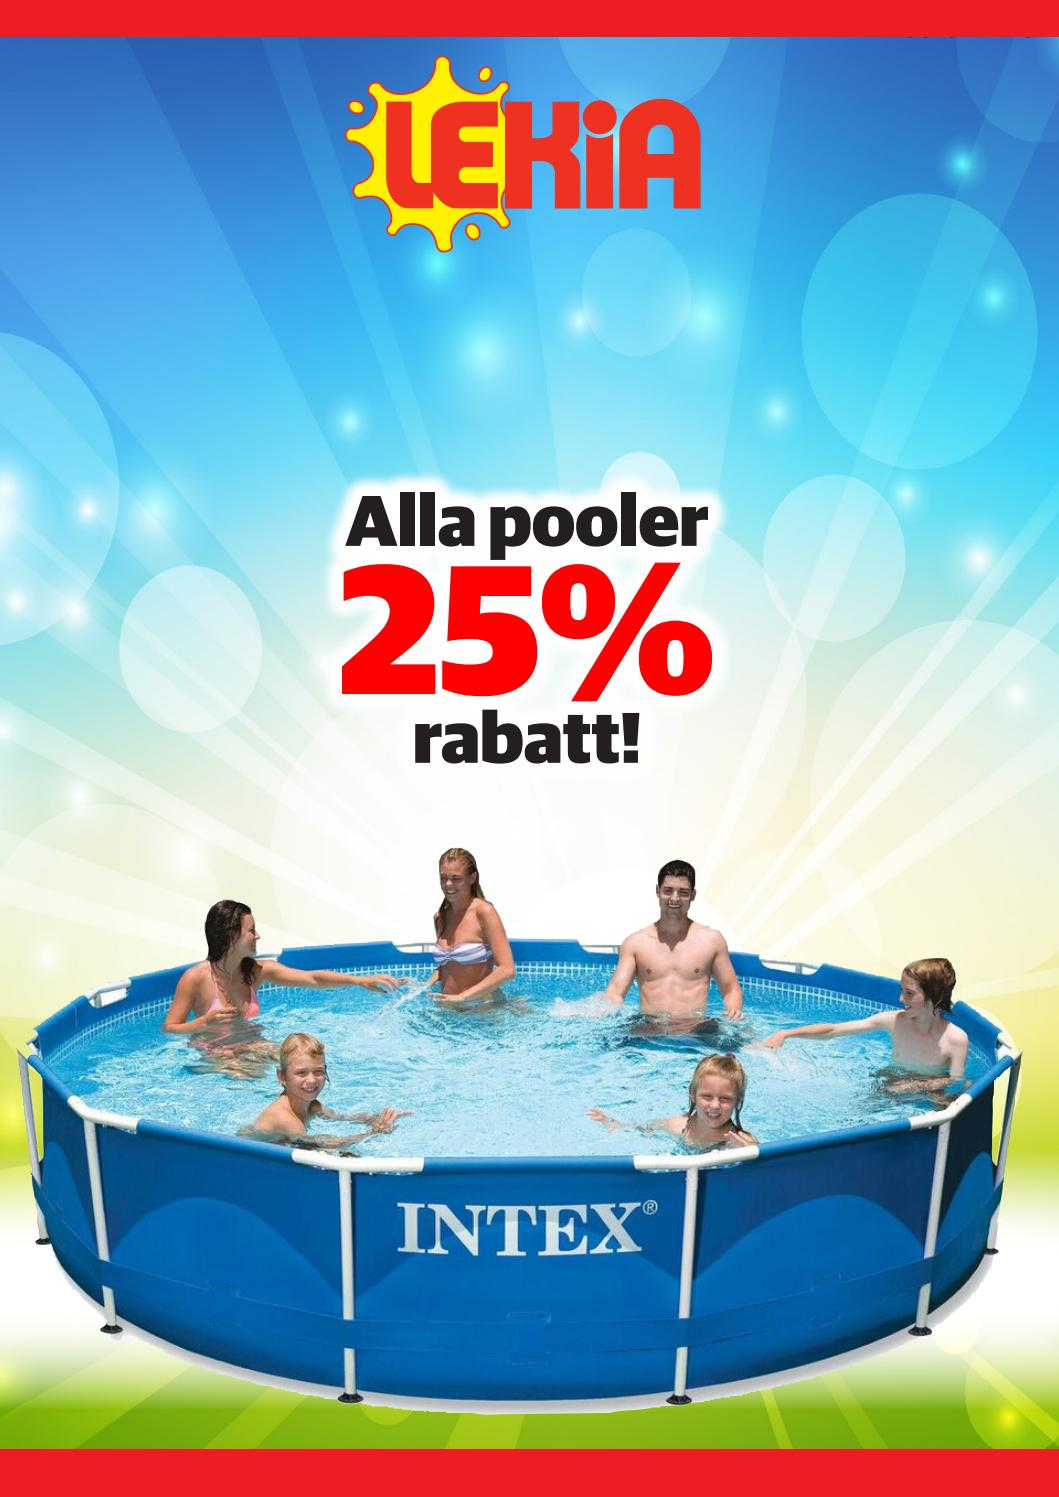 Intex Pool Sandfilterpumpe Volt 220-240 Pooler 2017 Gävle By Lekia Gävle Issuu